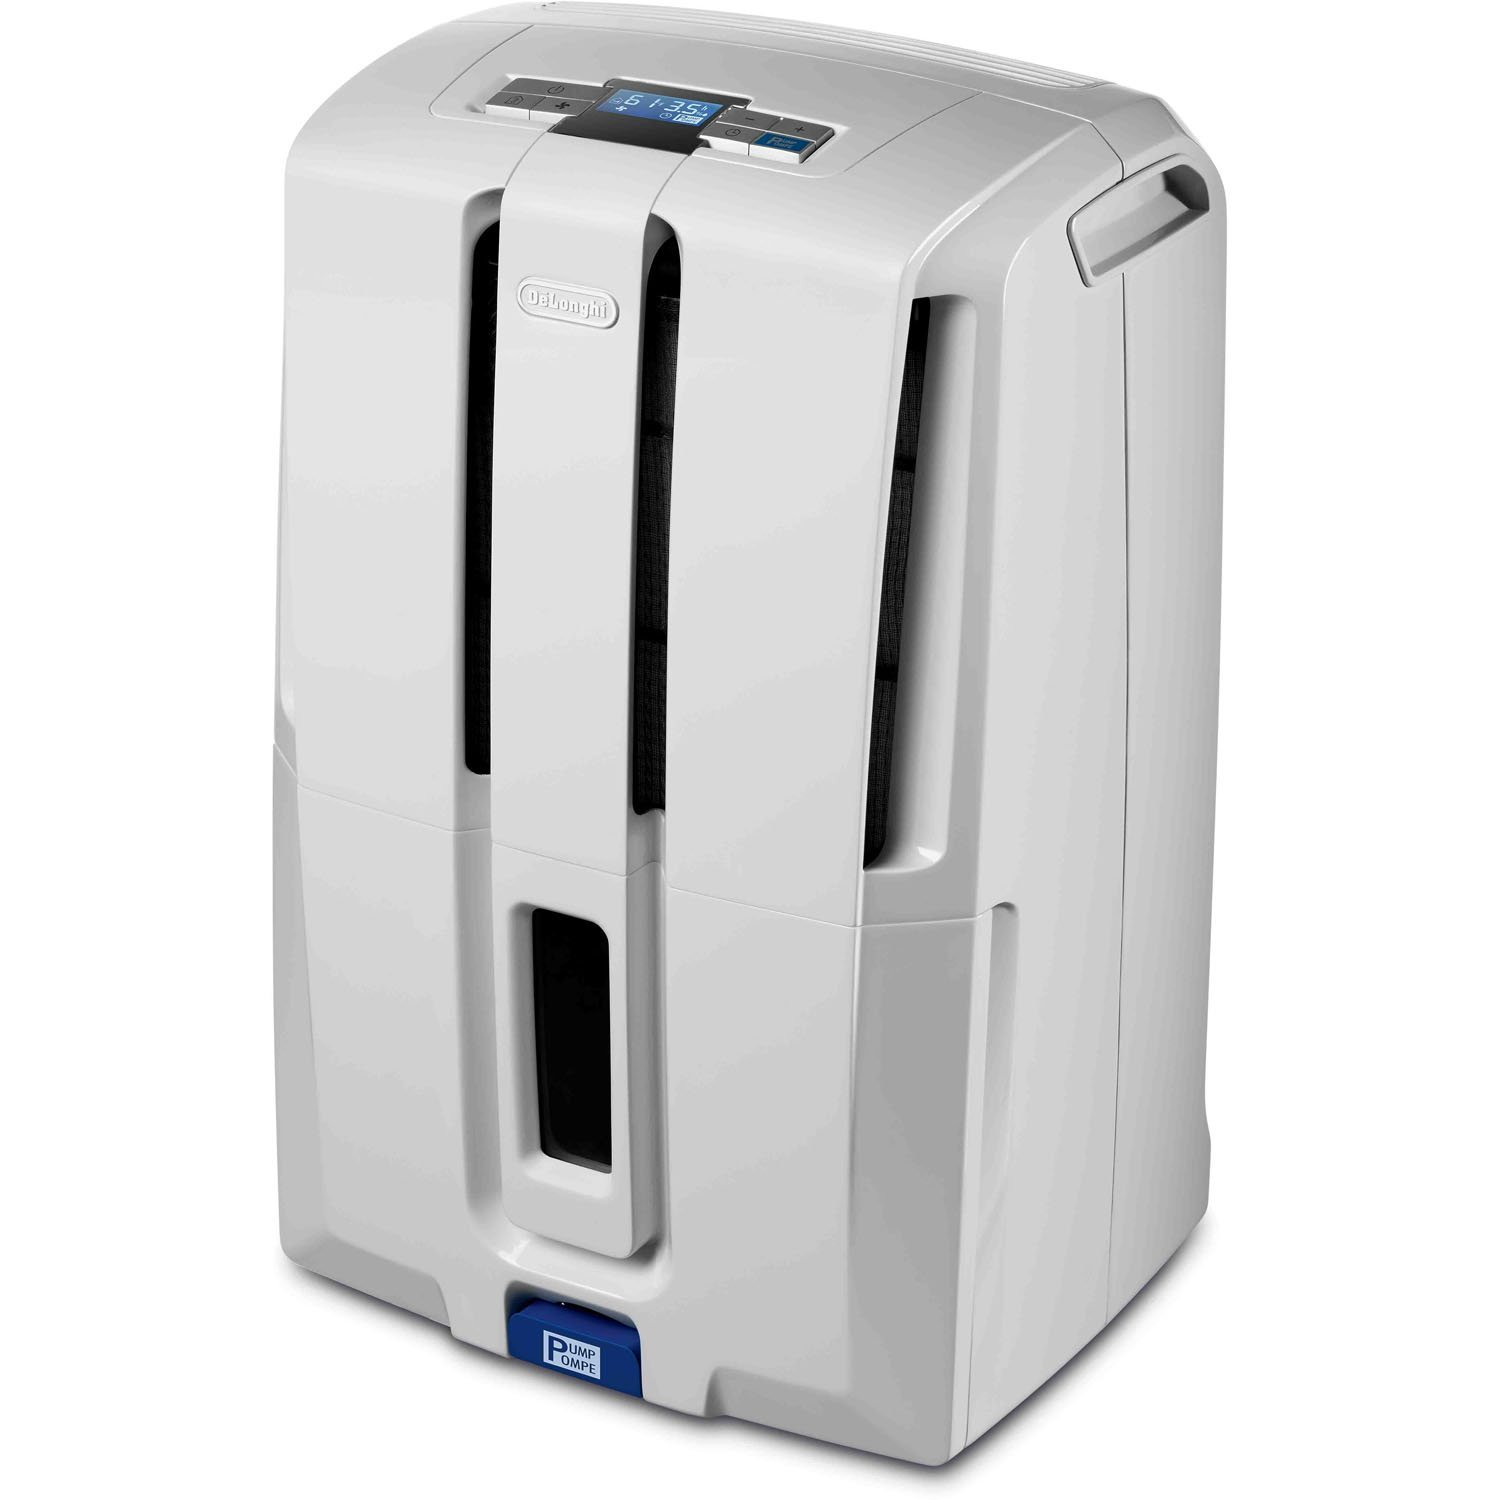 Delonghi dehumidifier Review 2015 AirBetter.org #19336B